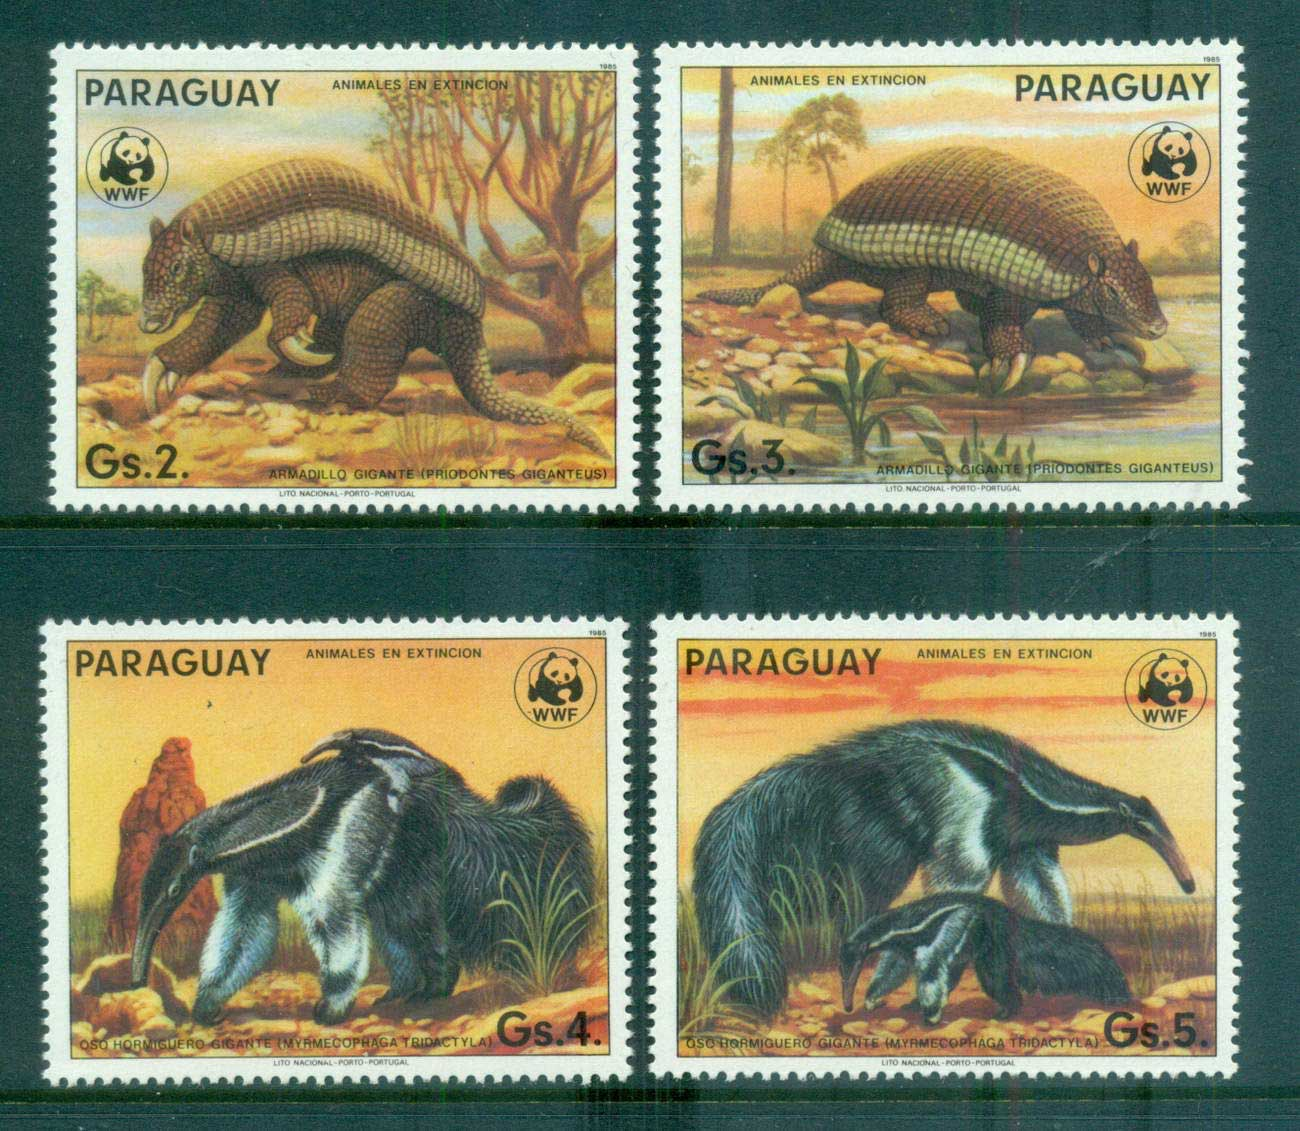 Paraguay 1985 WWF Ant-Eating Giants MUH lot64089